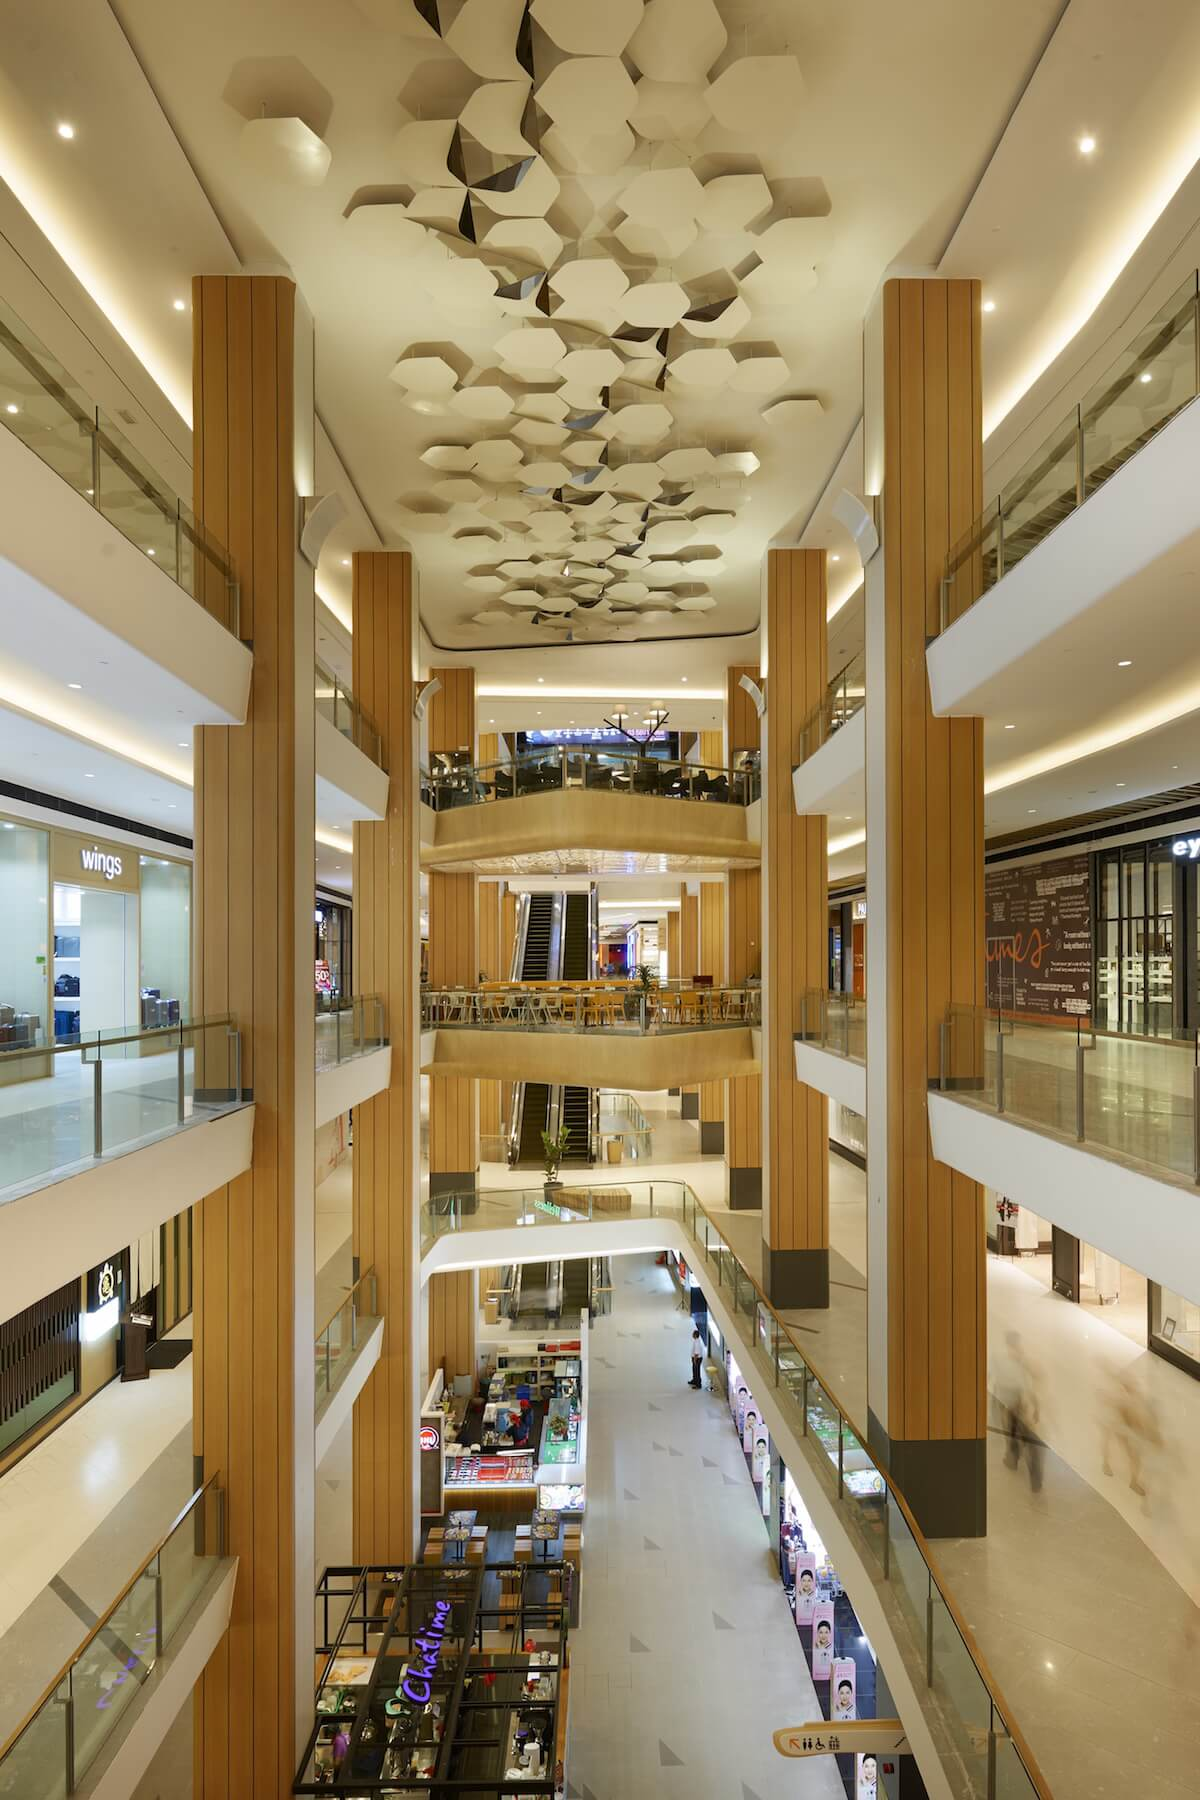 Atria Mall at Damansara by Blu Water Studio